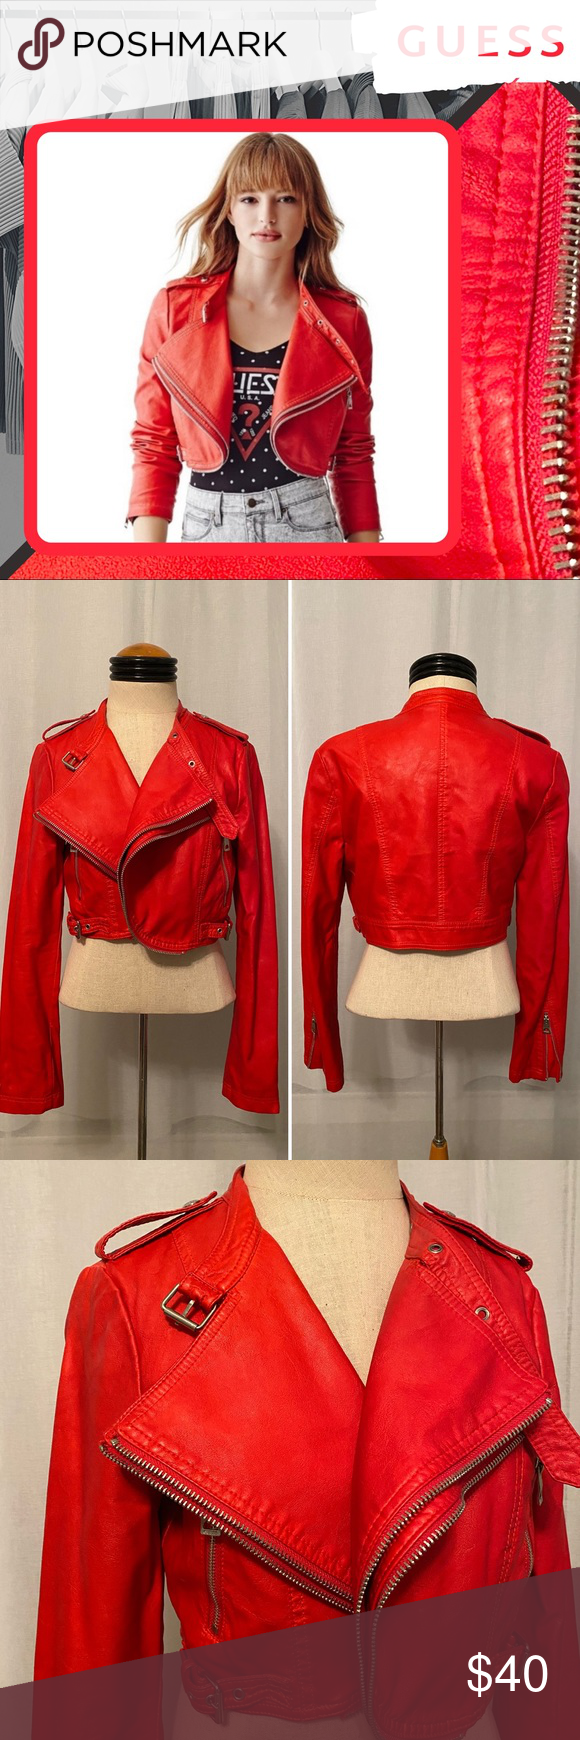 Guess Red Faux Leather Cropped Biker Jacket Sz M Cropped Biker Jacket Jackets Clothes Design [ 1740 x 580 Pixel ]